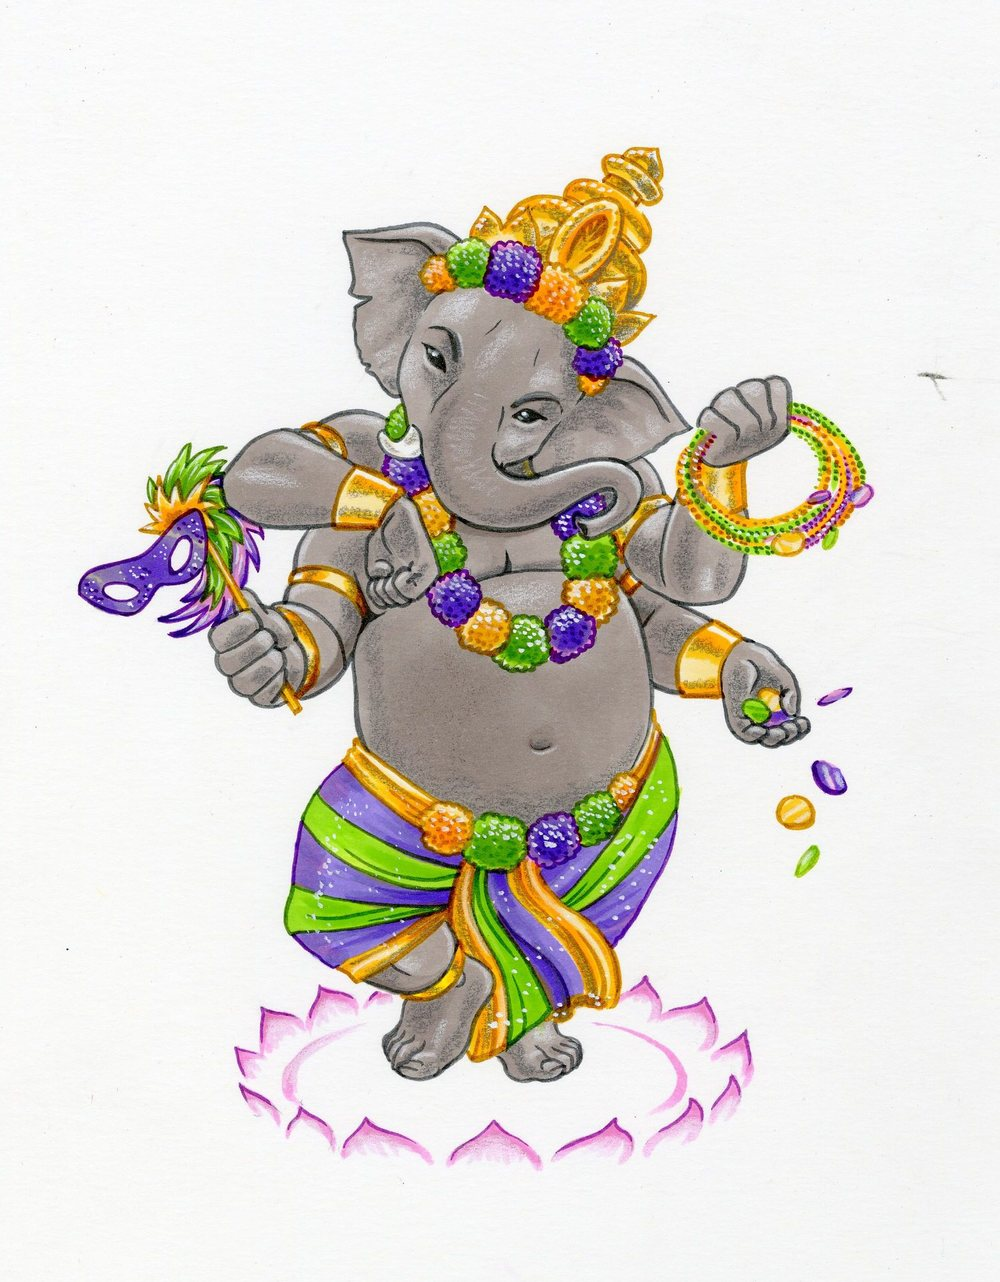 This version of Ganesh looks like a squeak toy... but that's OK for Mardi Gras, I think.